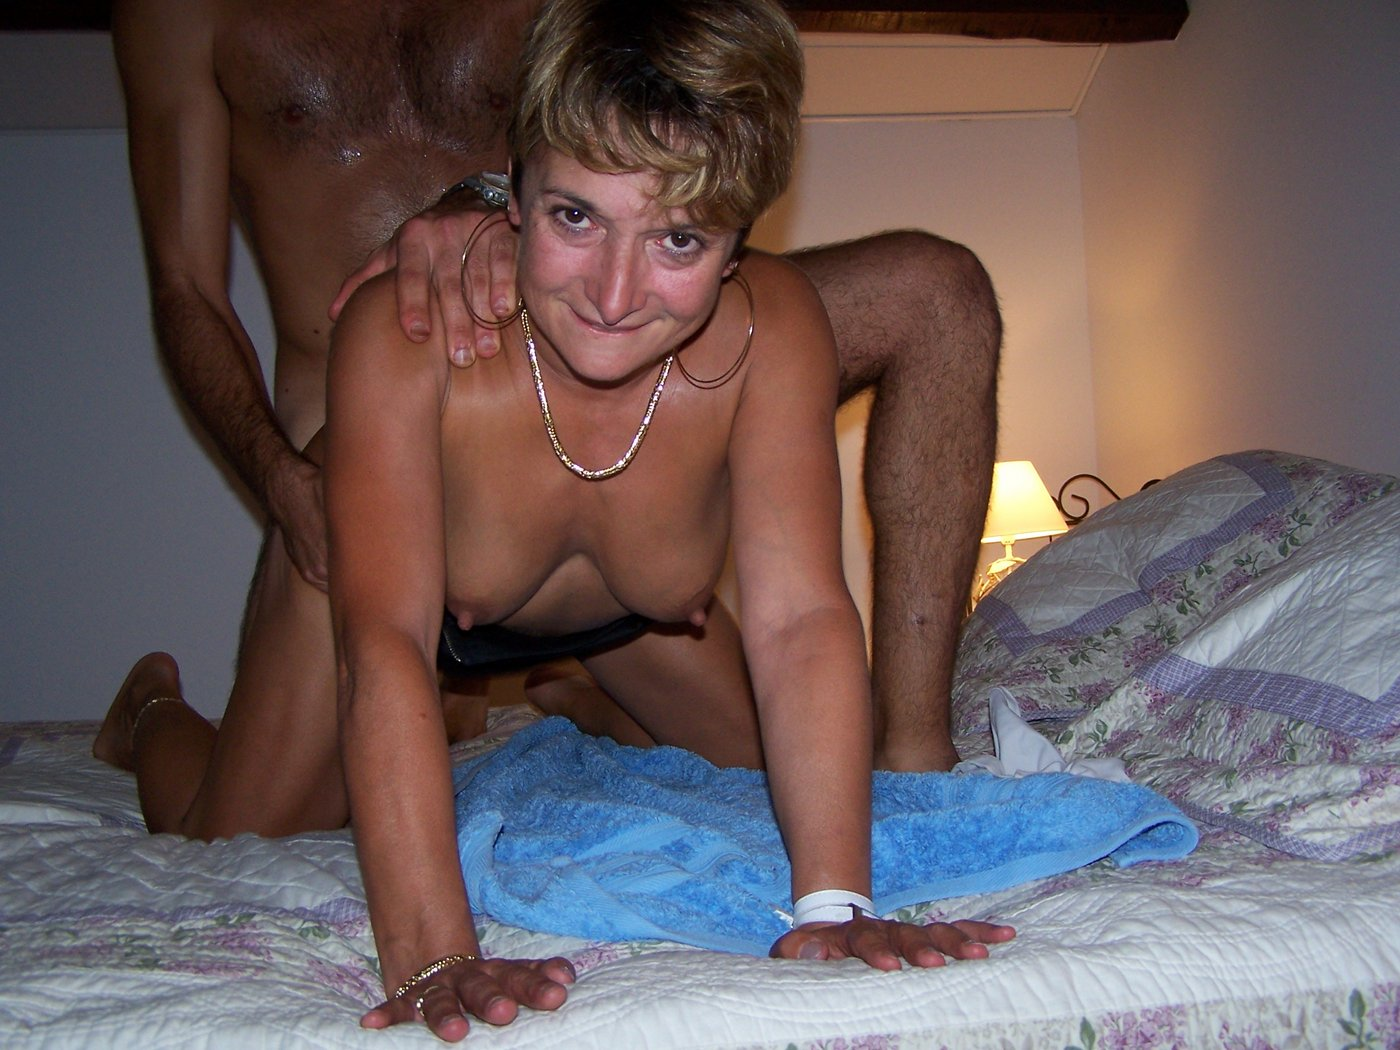 Couple amateur gallery mature